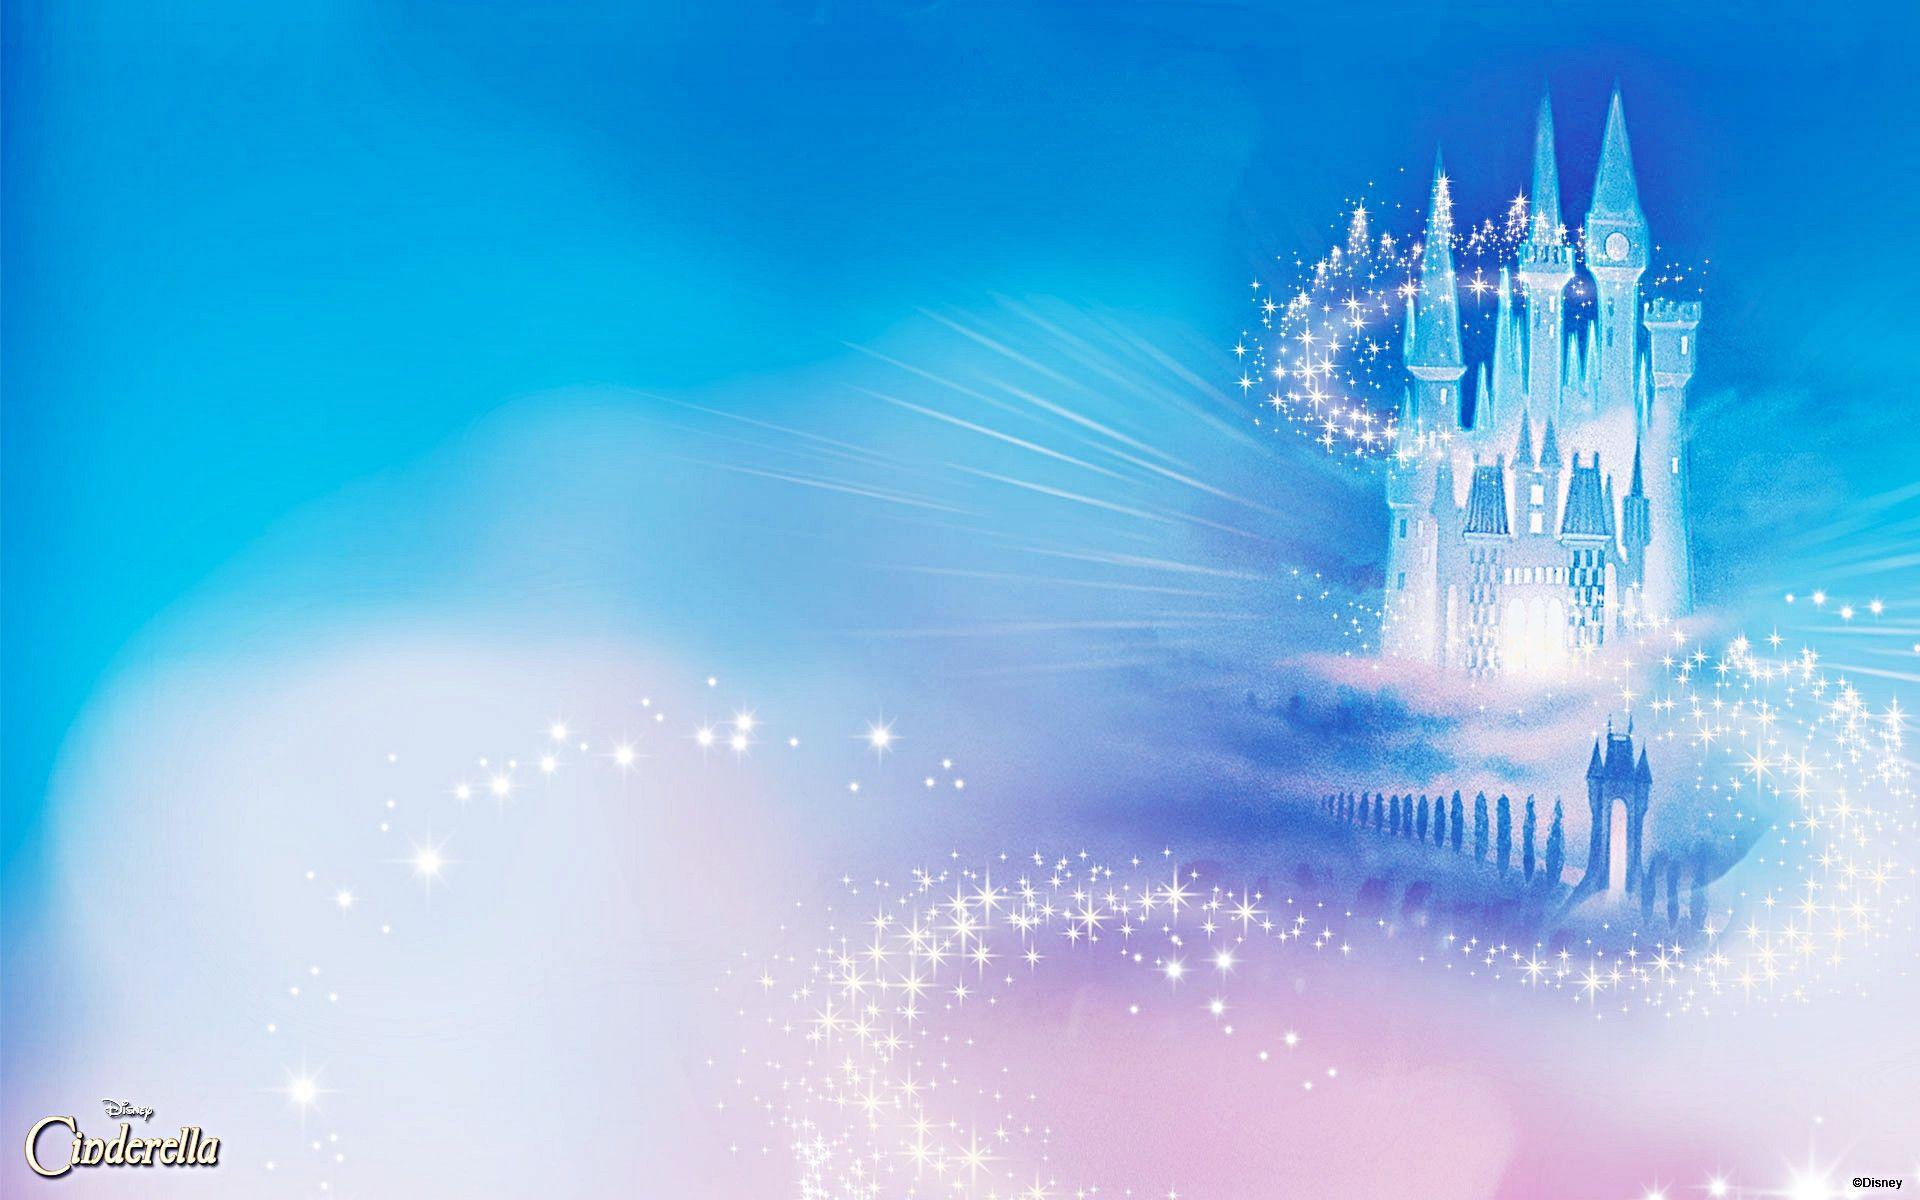 AAD-495: Cinderella Wallpapers, Pictures of Cinderella HD, 47 Fine ...